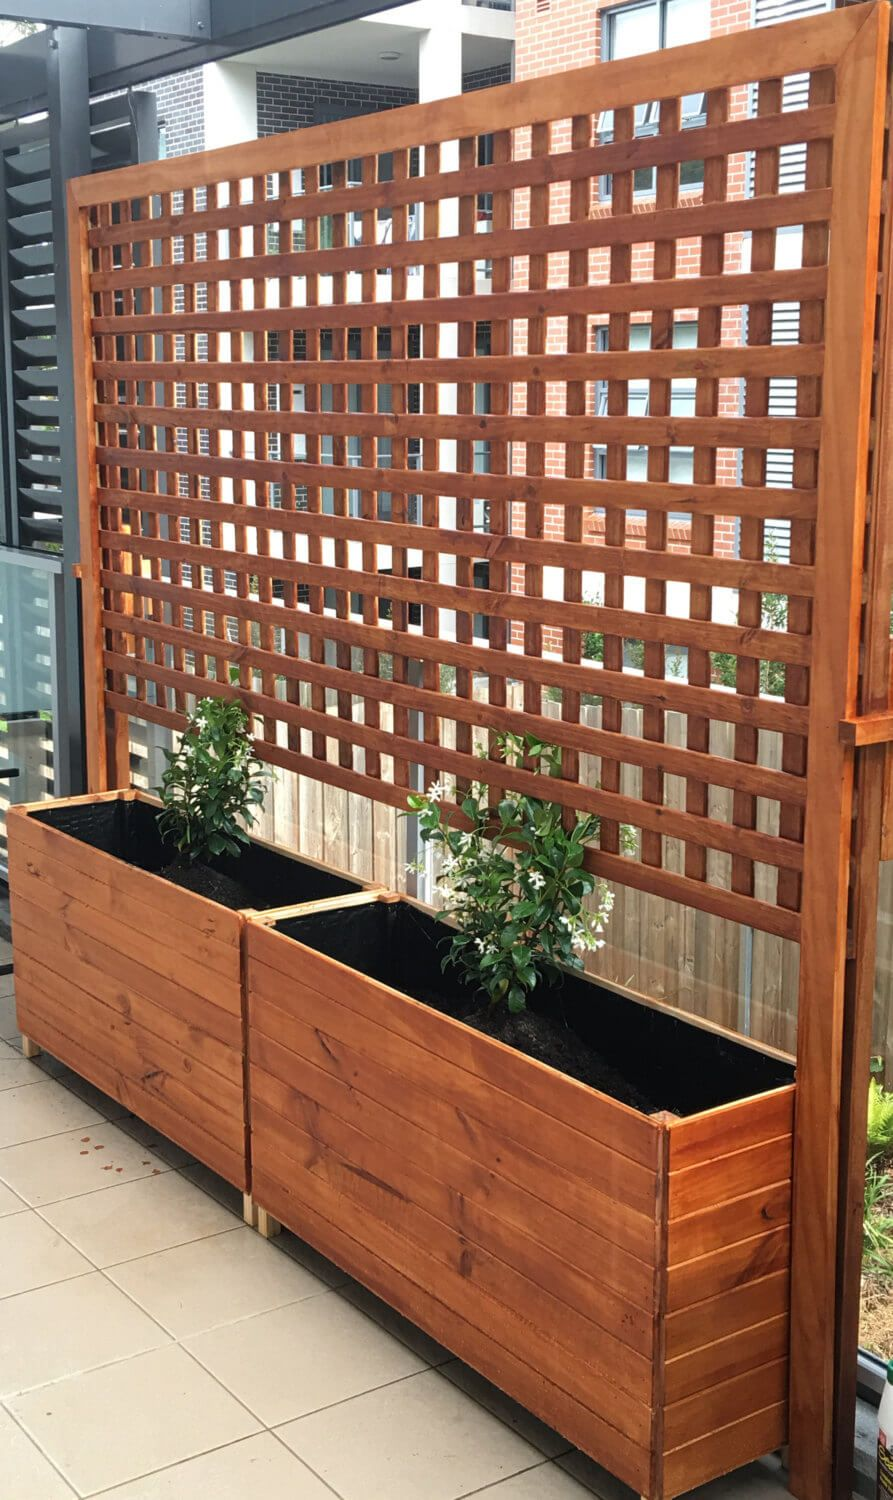 33 Beautiful Built In Planter Ideas To Upgrade Your Outdoor Space Privacy Fence Landscaping Privacy Landscaping Garden Planter Boxes